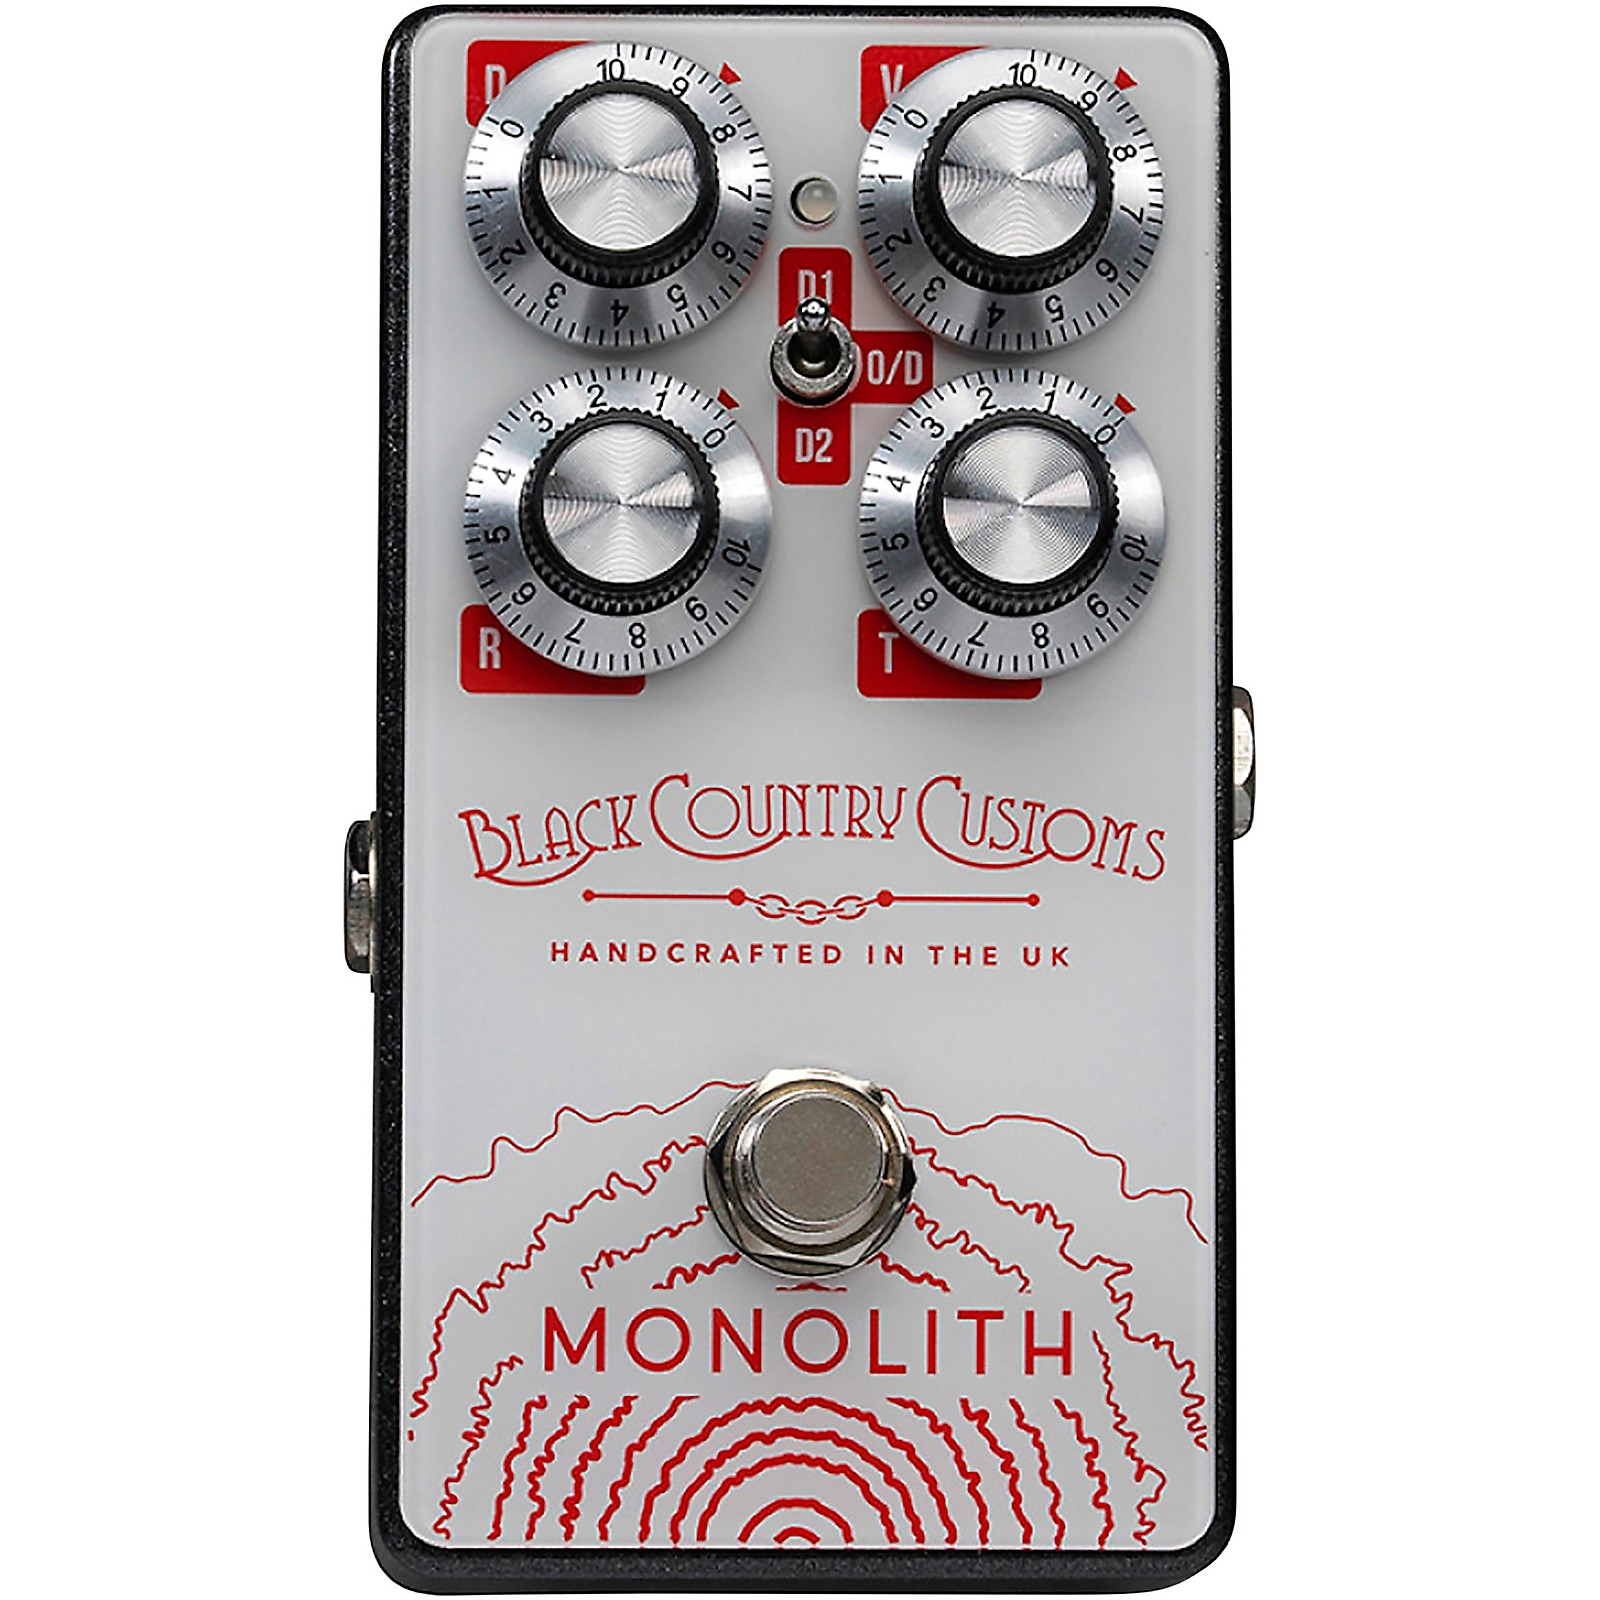 Laney Black Country Customs Monolith Distortion Effects Pedal